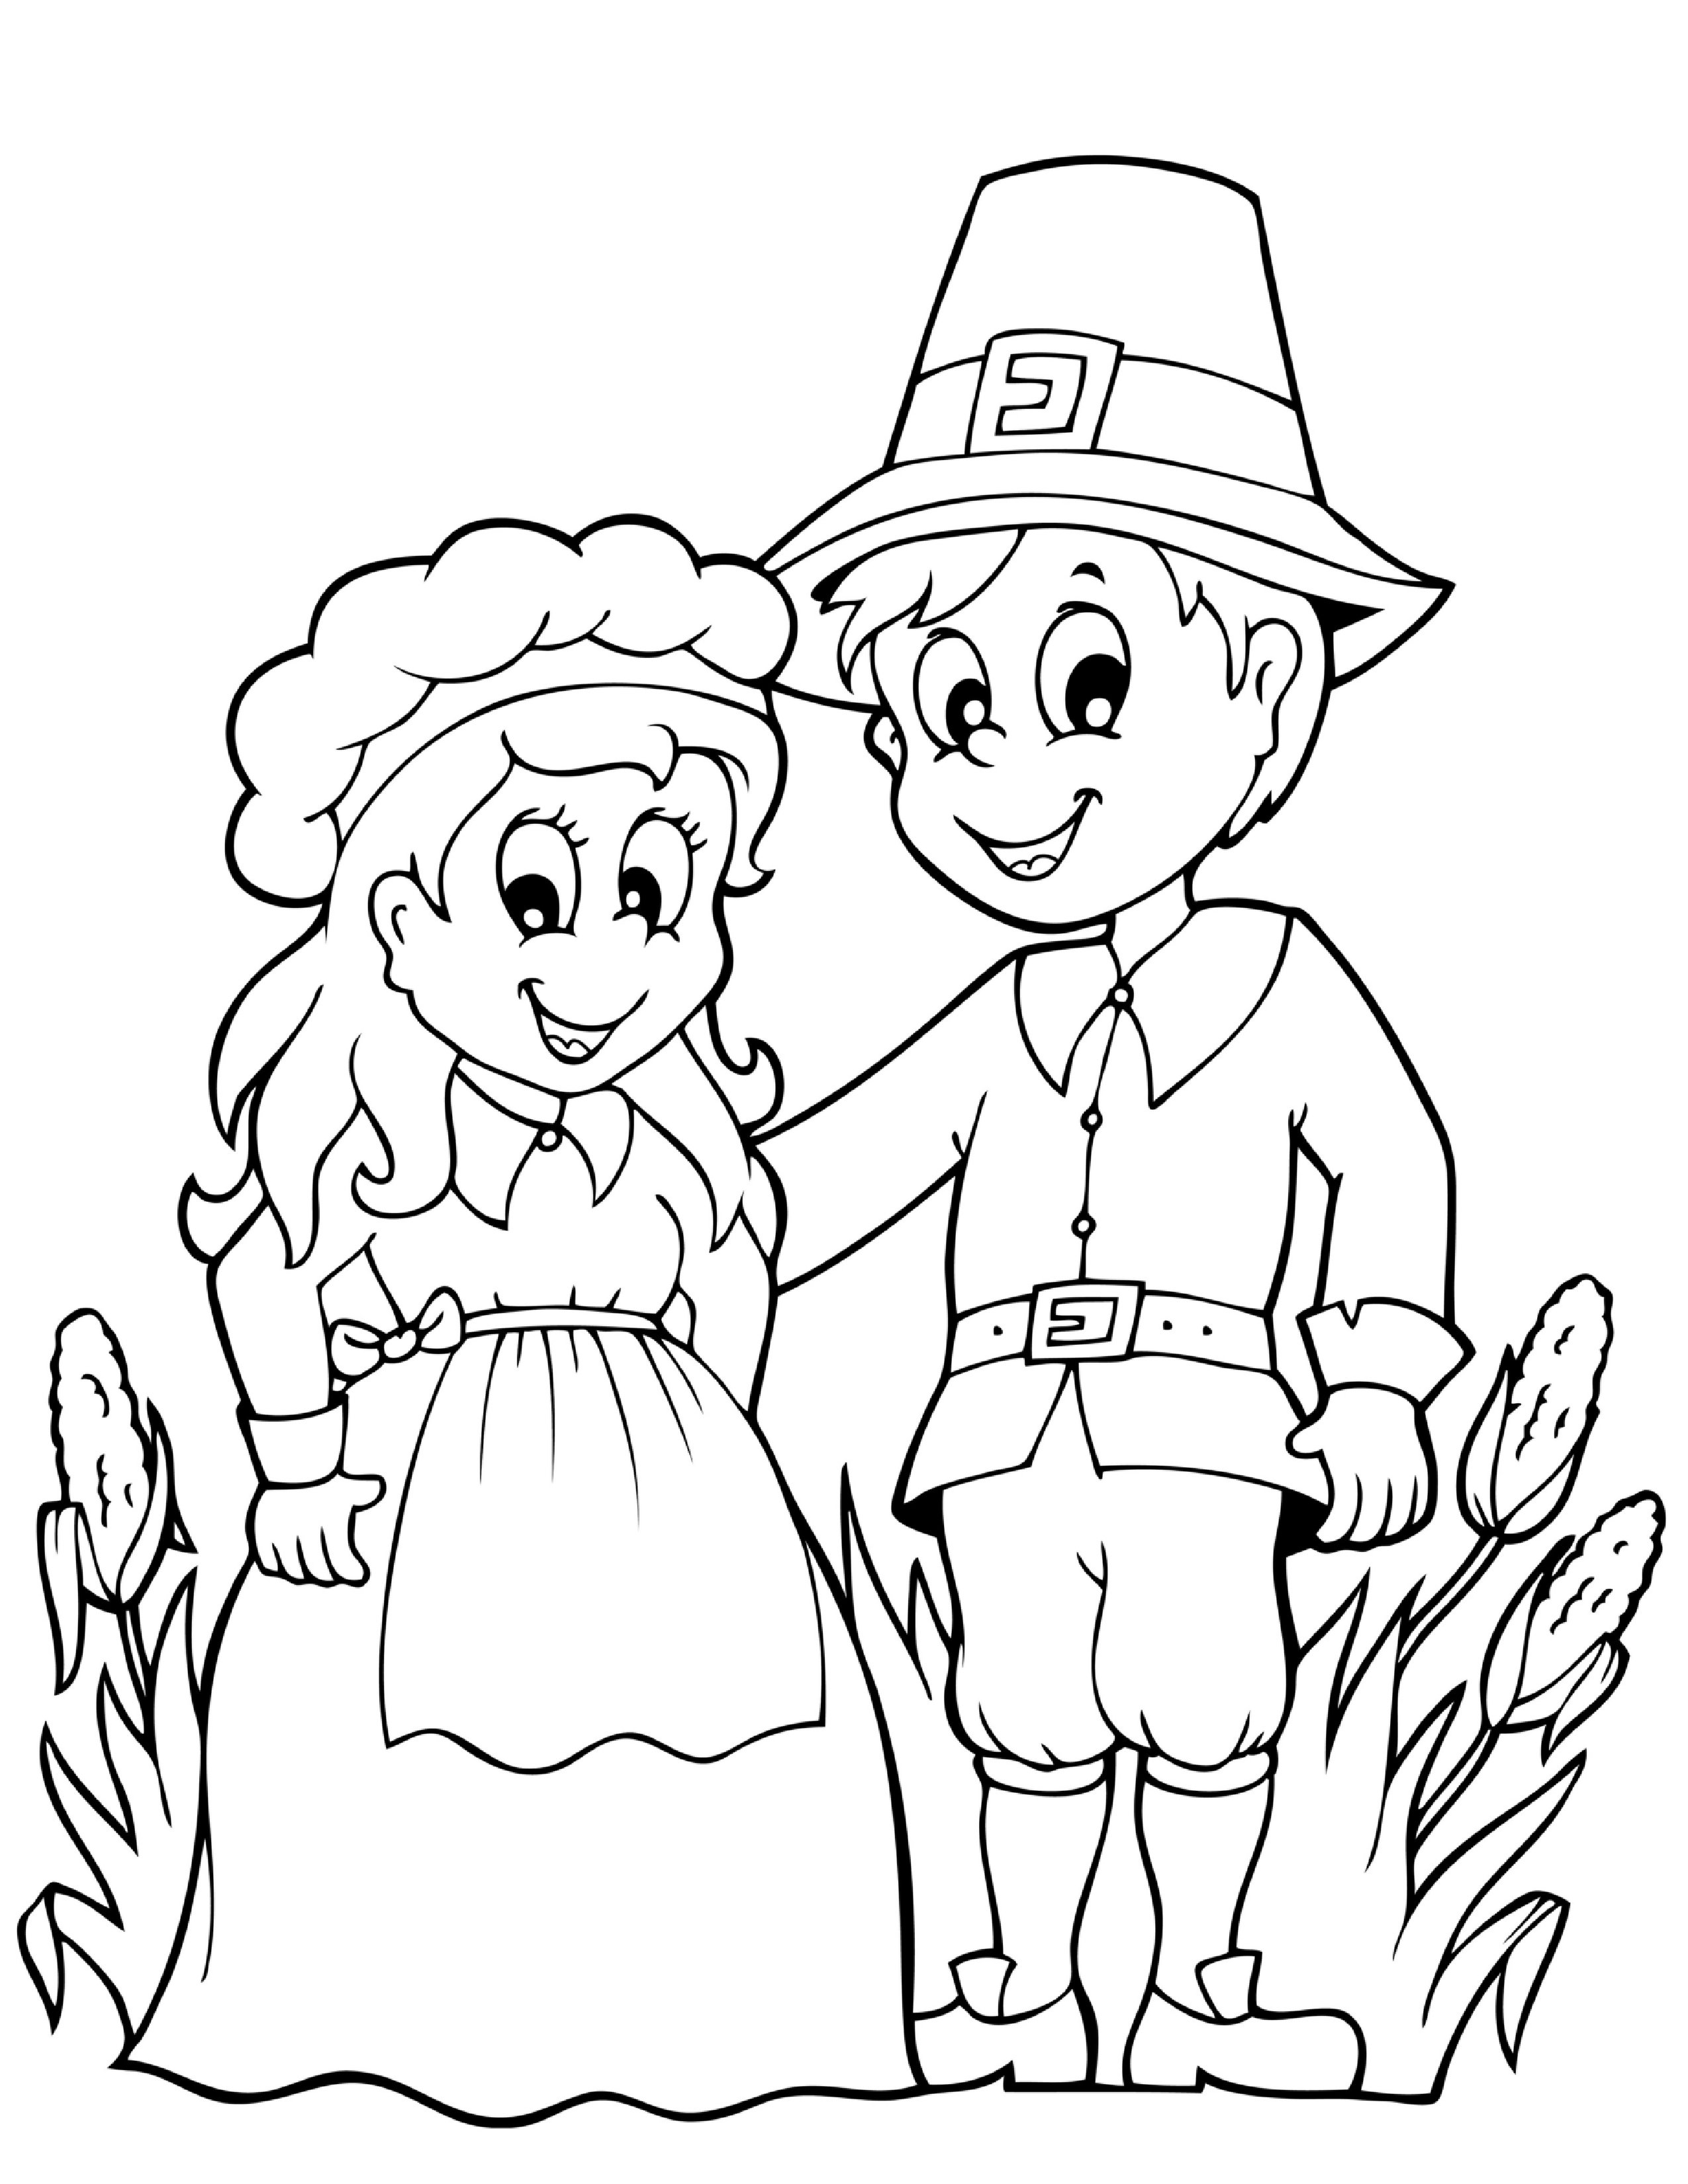 Pilgrim Indian Coloring Pages Collection Thanksgiving Indian Coloring Pages Pictures